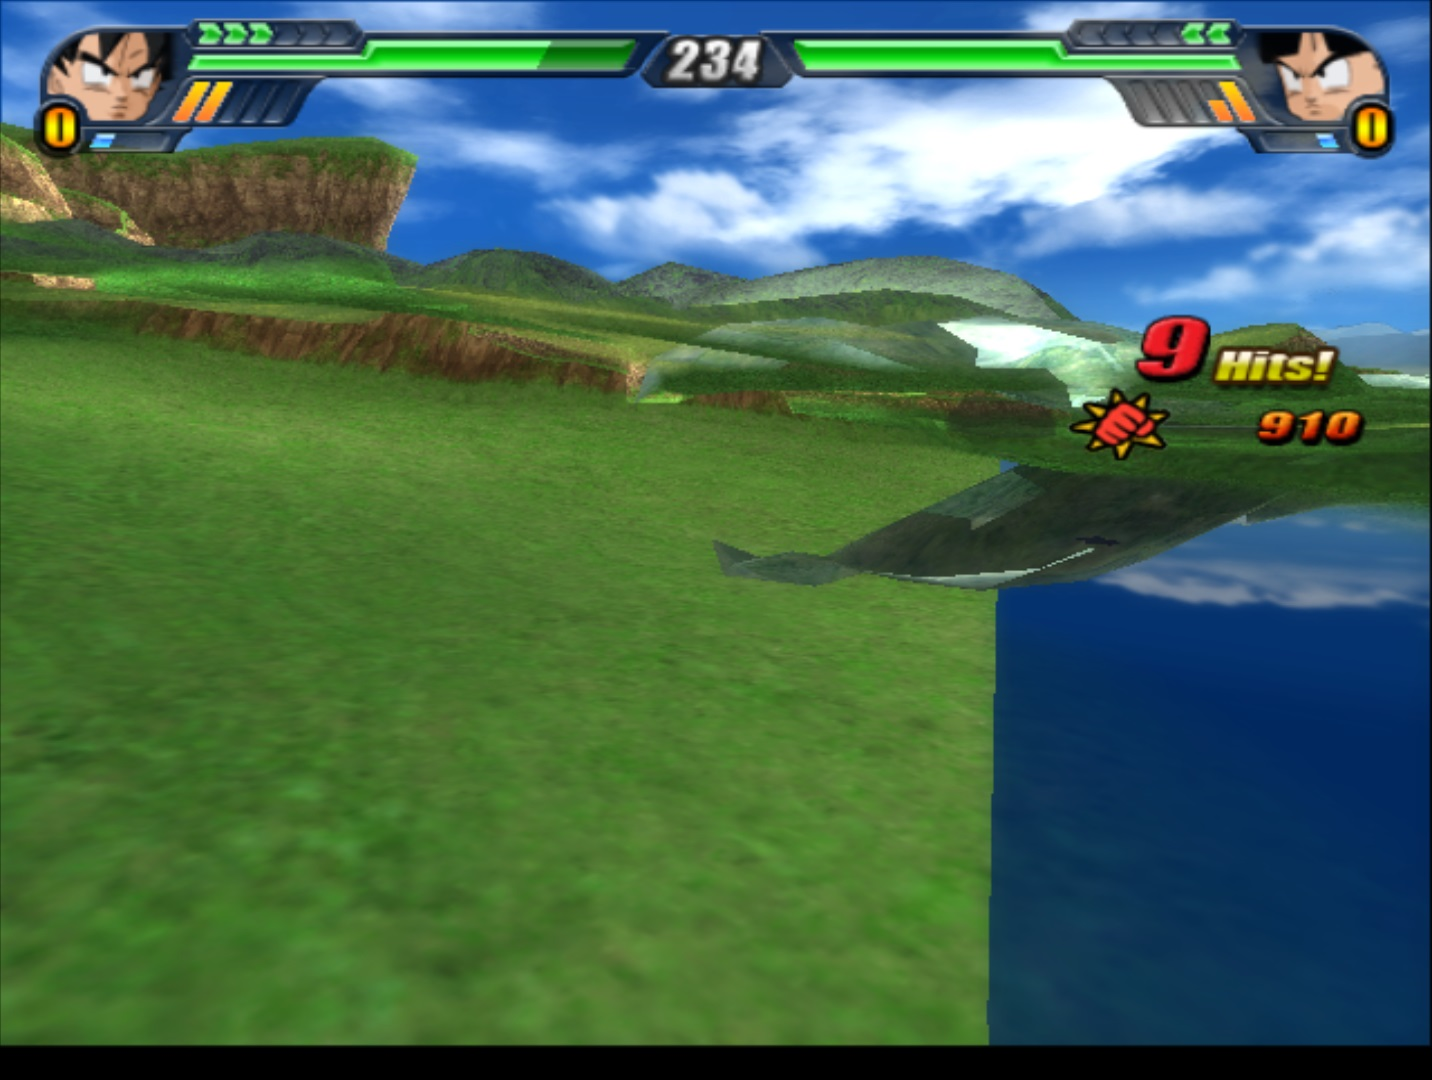 Emulator Issues #9438: D3D graphical bugs in Dragon Ball Z